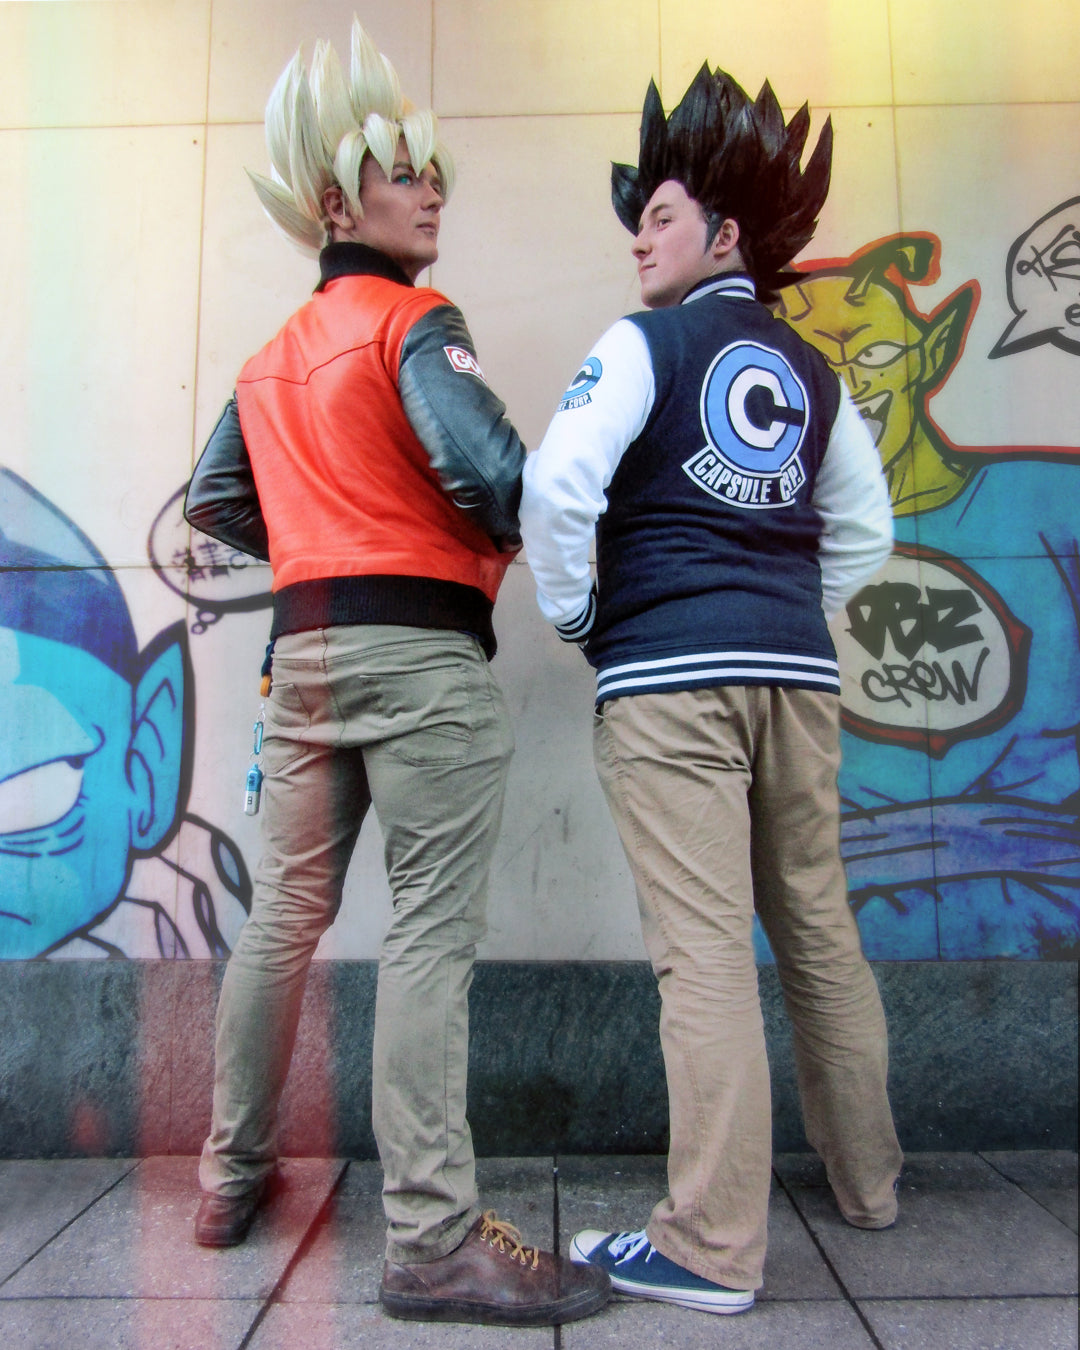 Casual Goku and Vegeta Cosplay From DragonBall Z Wearing Their 59 And Capsule Corp Jackets